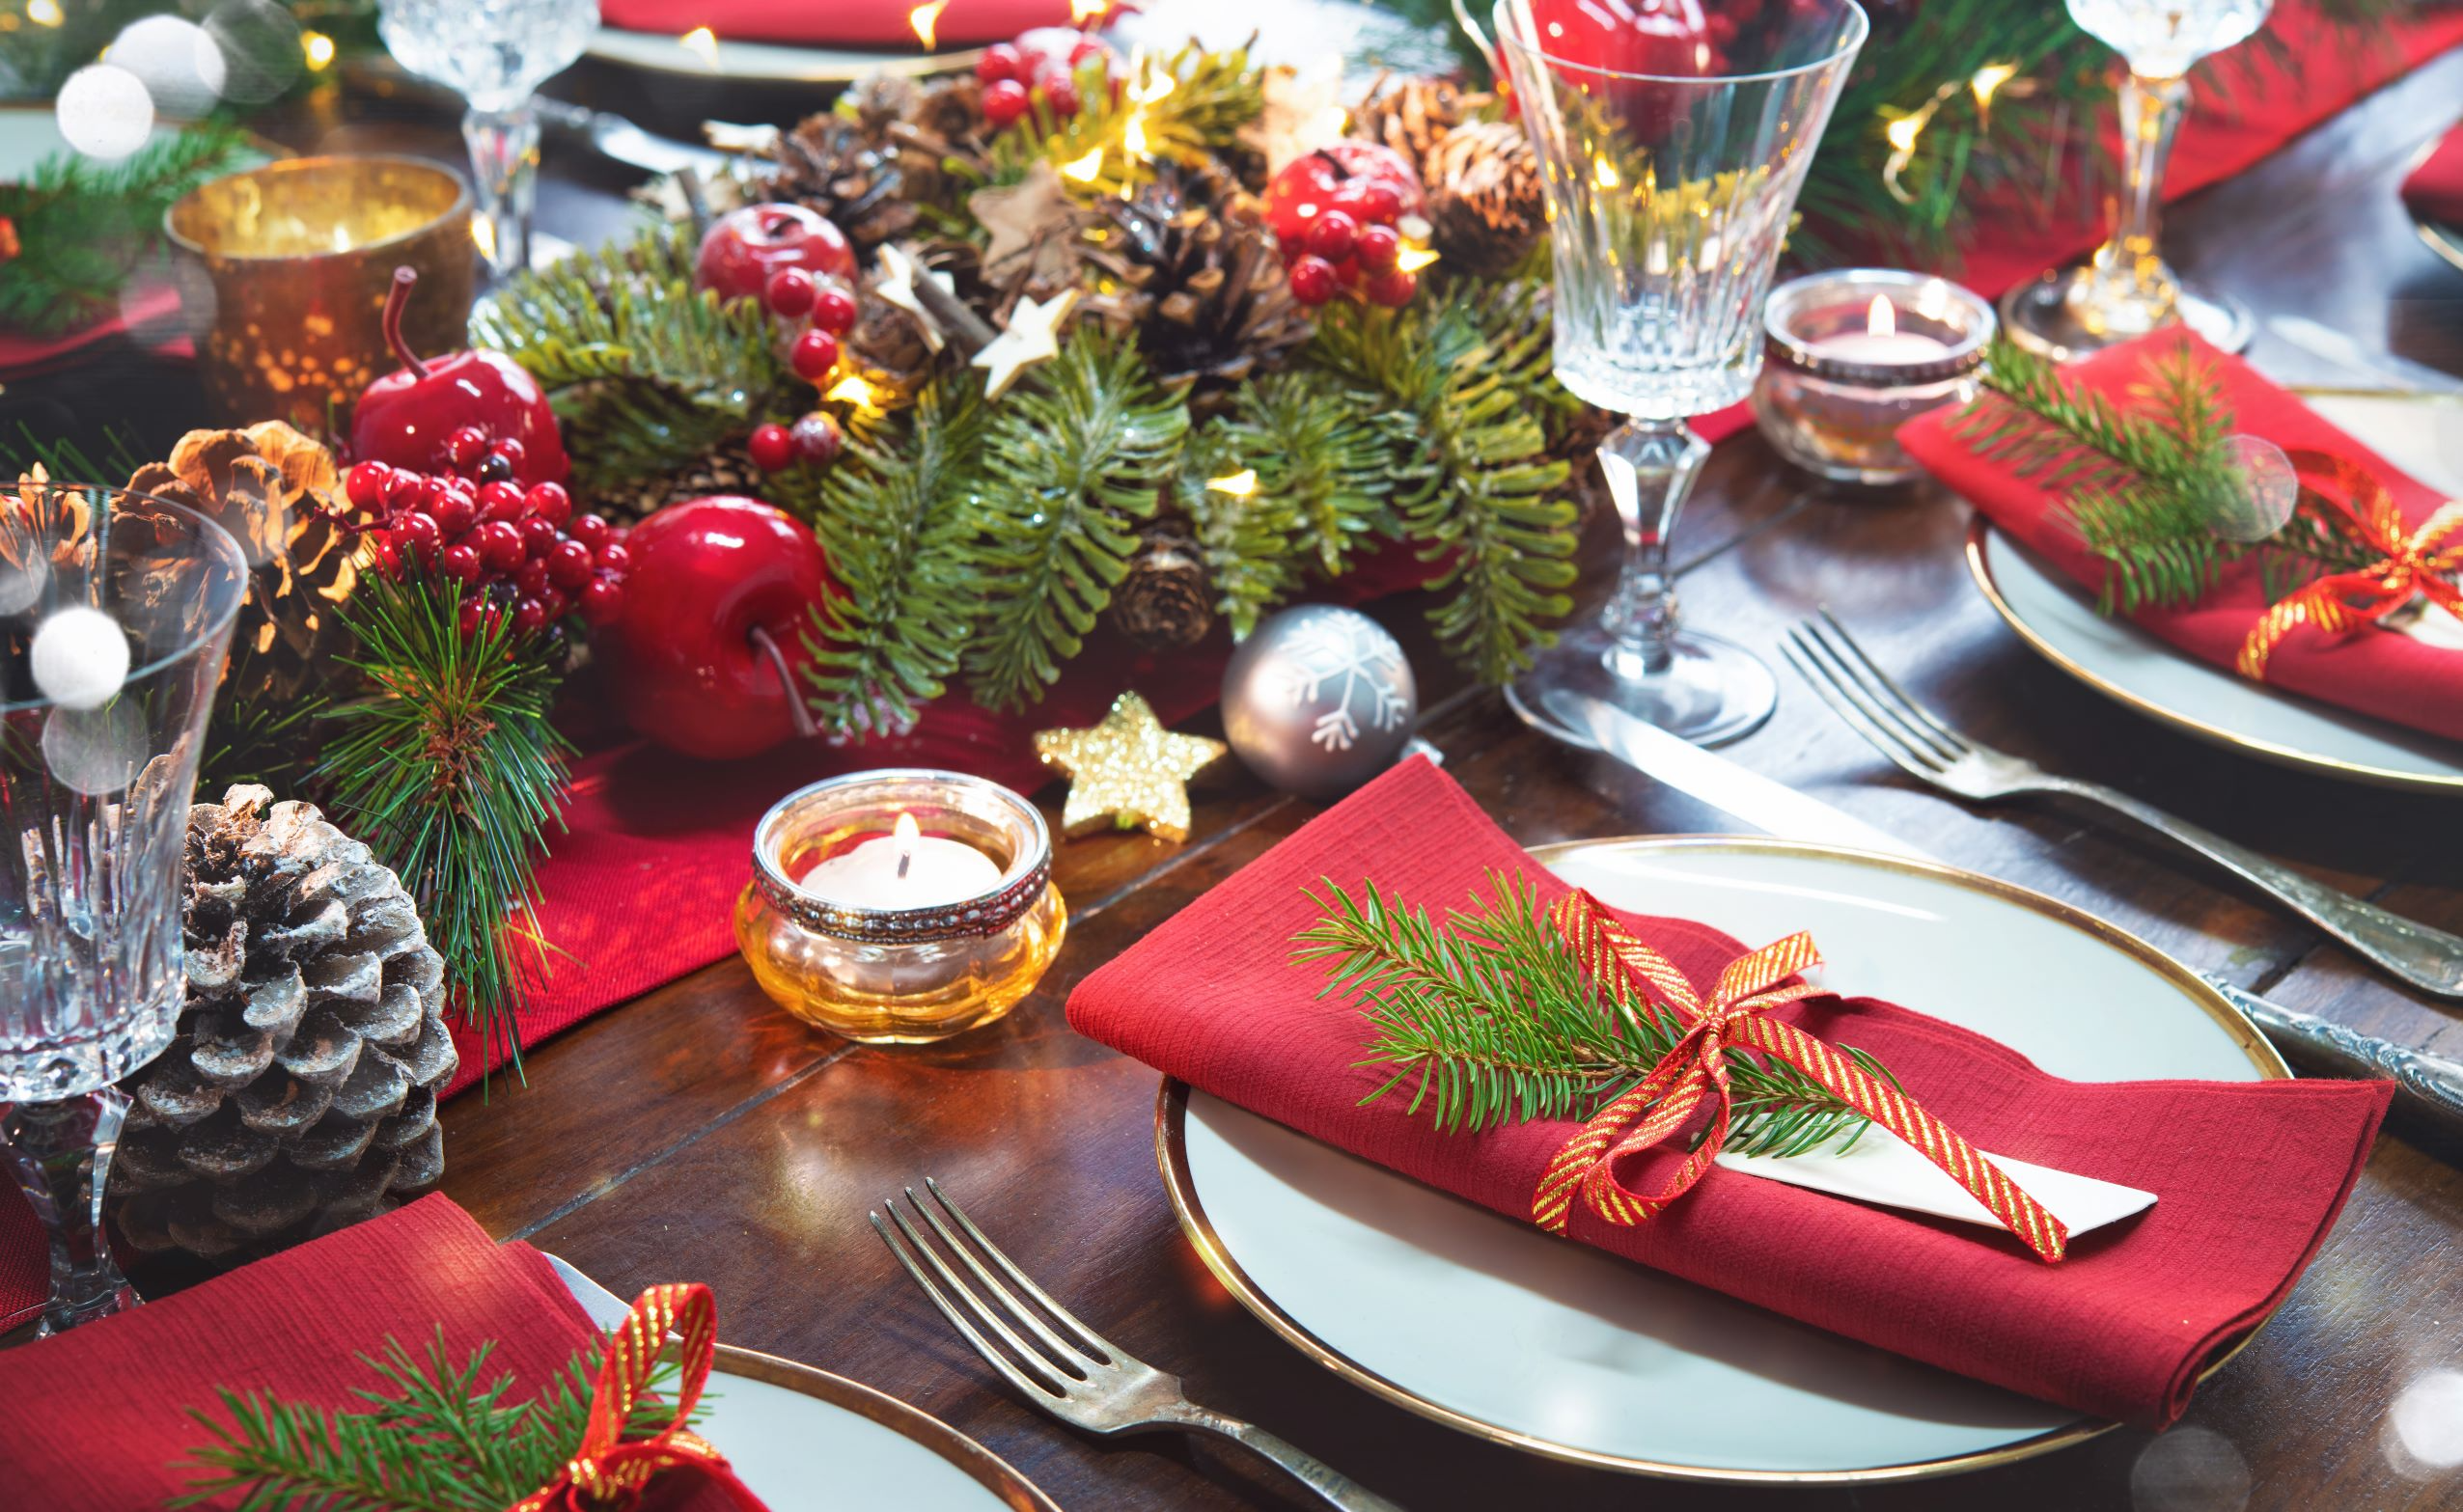 Personalized Christmas table setup with red and green theme.